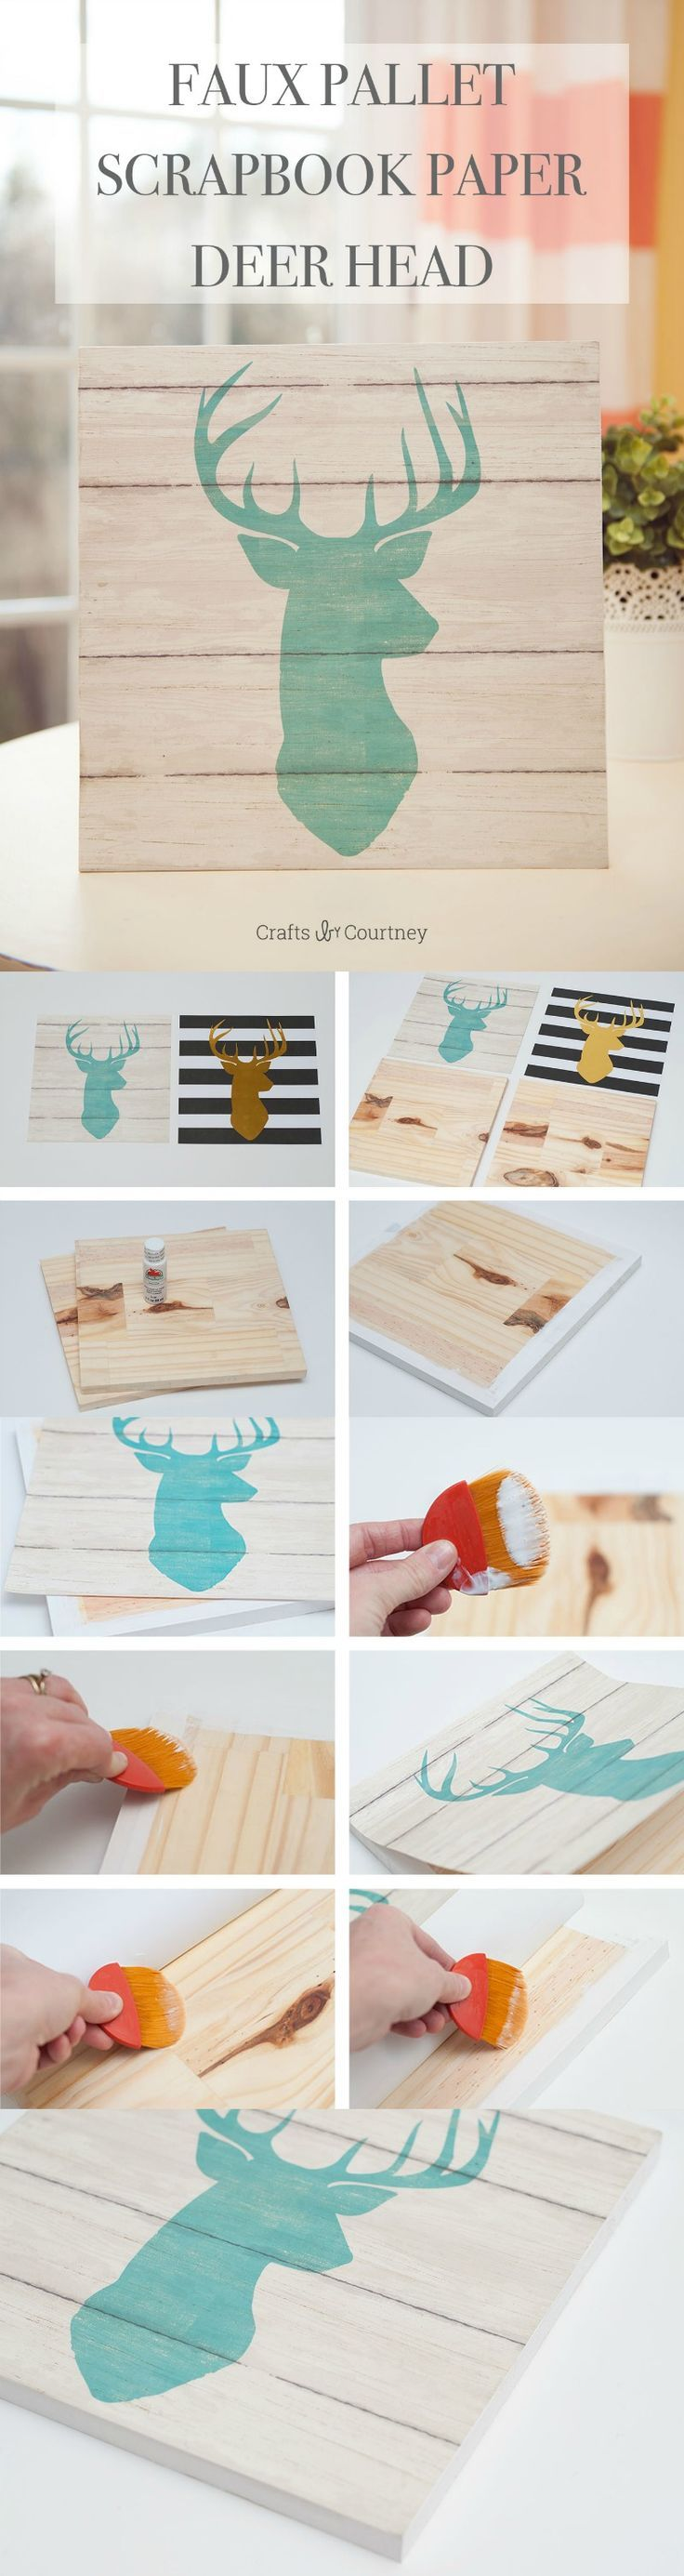 Decor hacks use cool scrapbook paper and cut pieces of Cool household hacks